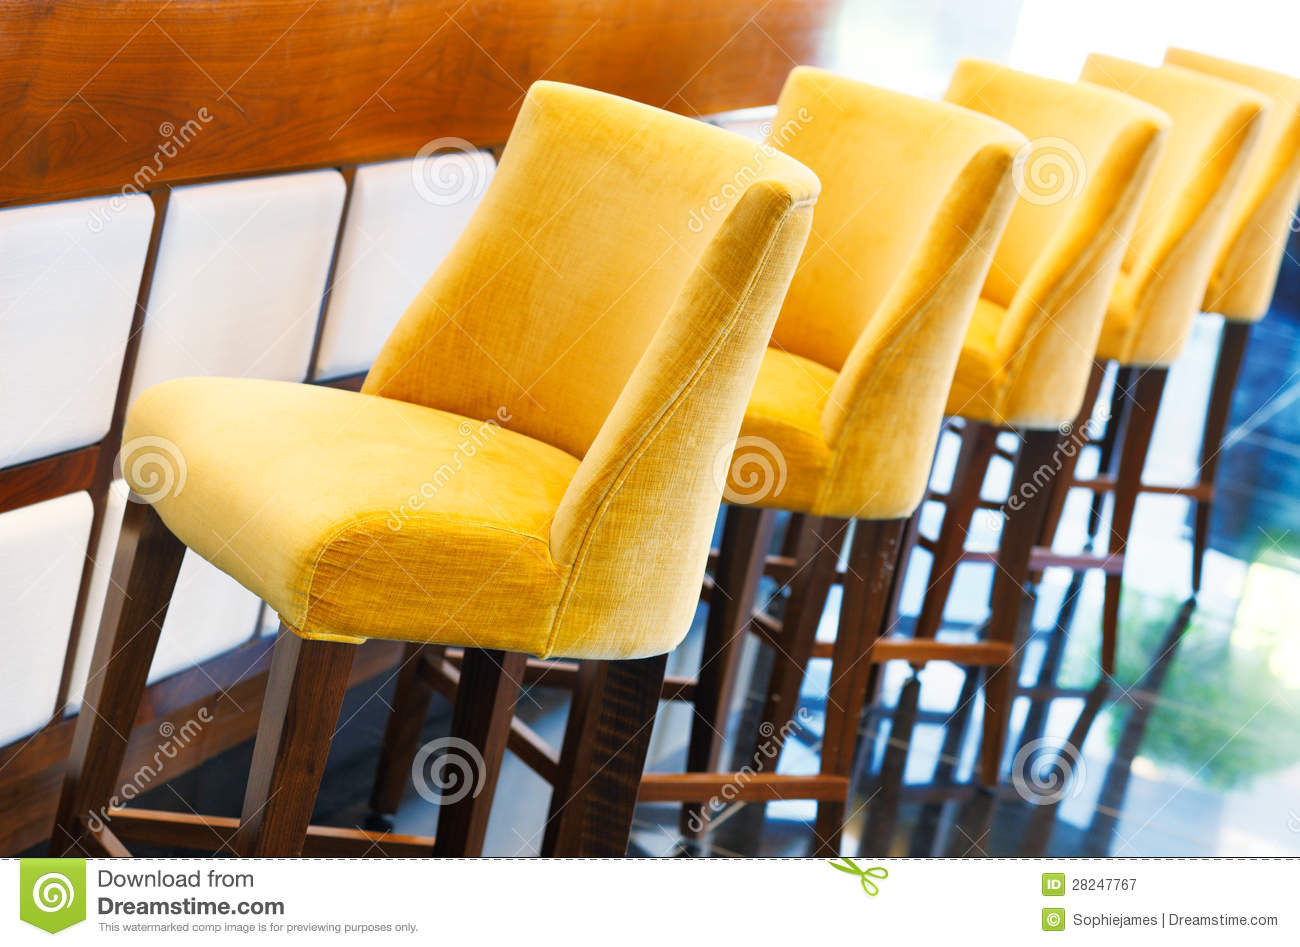 The Warm Yellow Bar Stools Royalty Free Stock Photography  : warm yellow bar stools 28247767 from dreamstime.com size 1300 x 947 jpeg 155kB